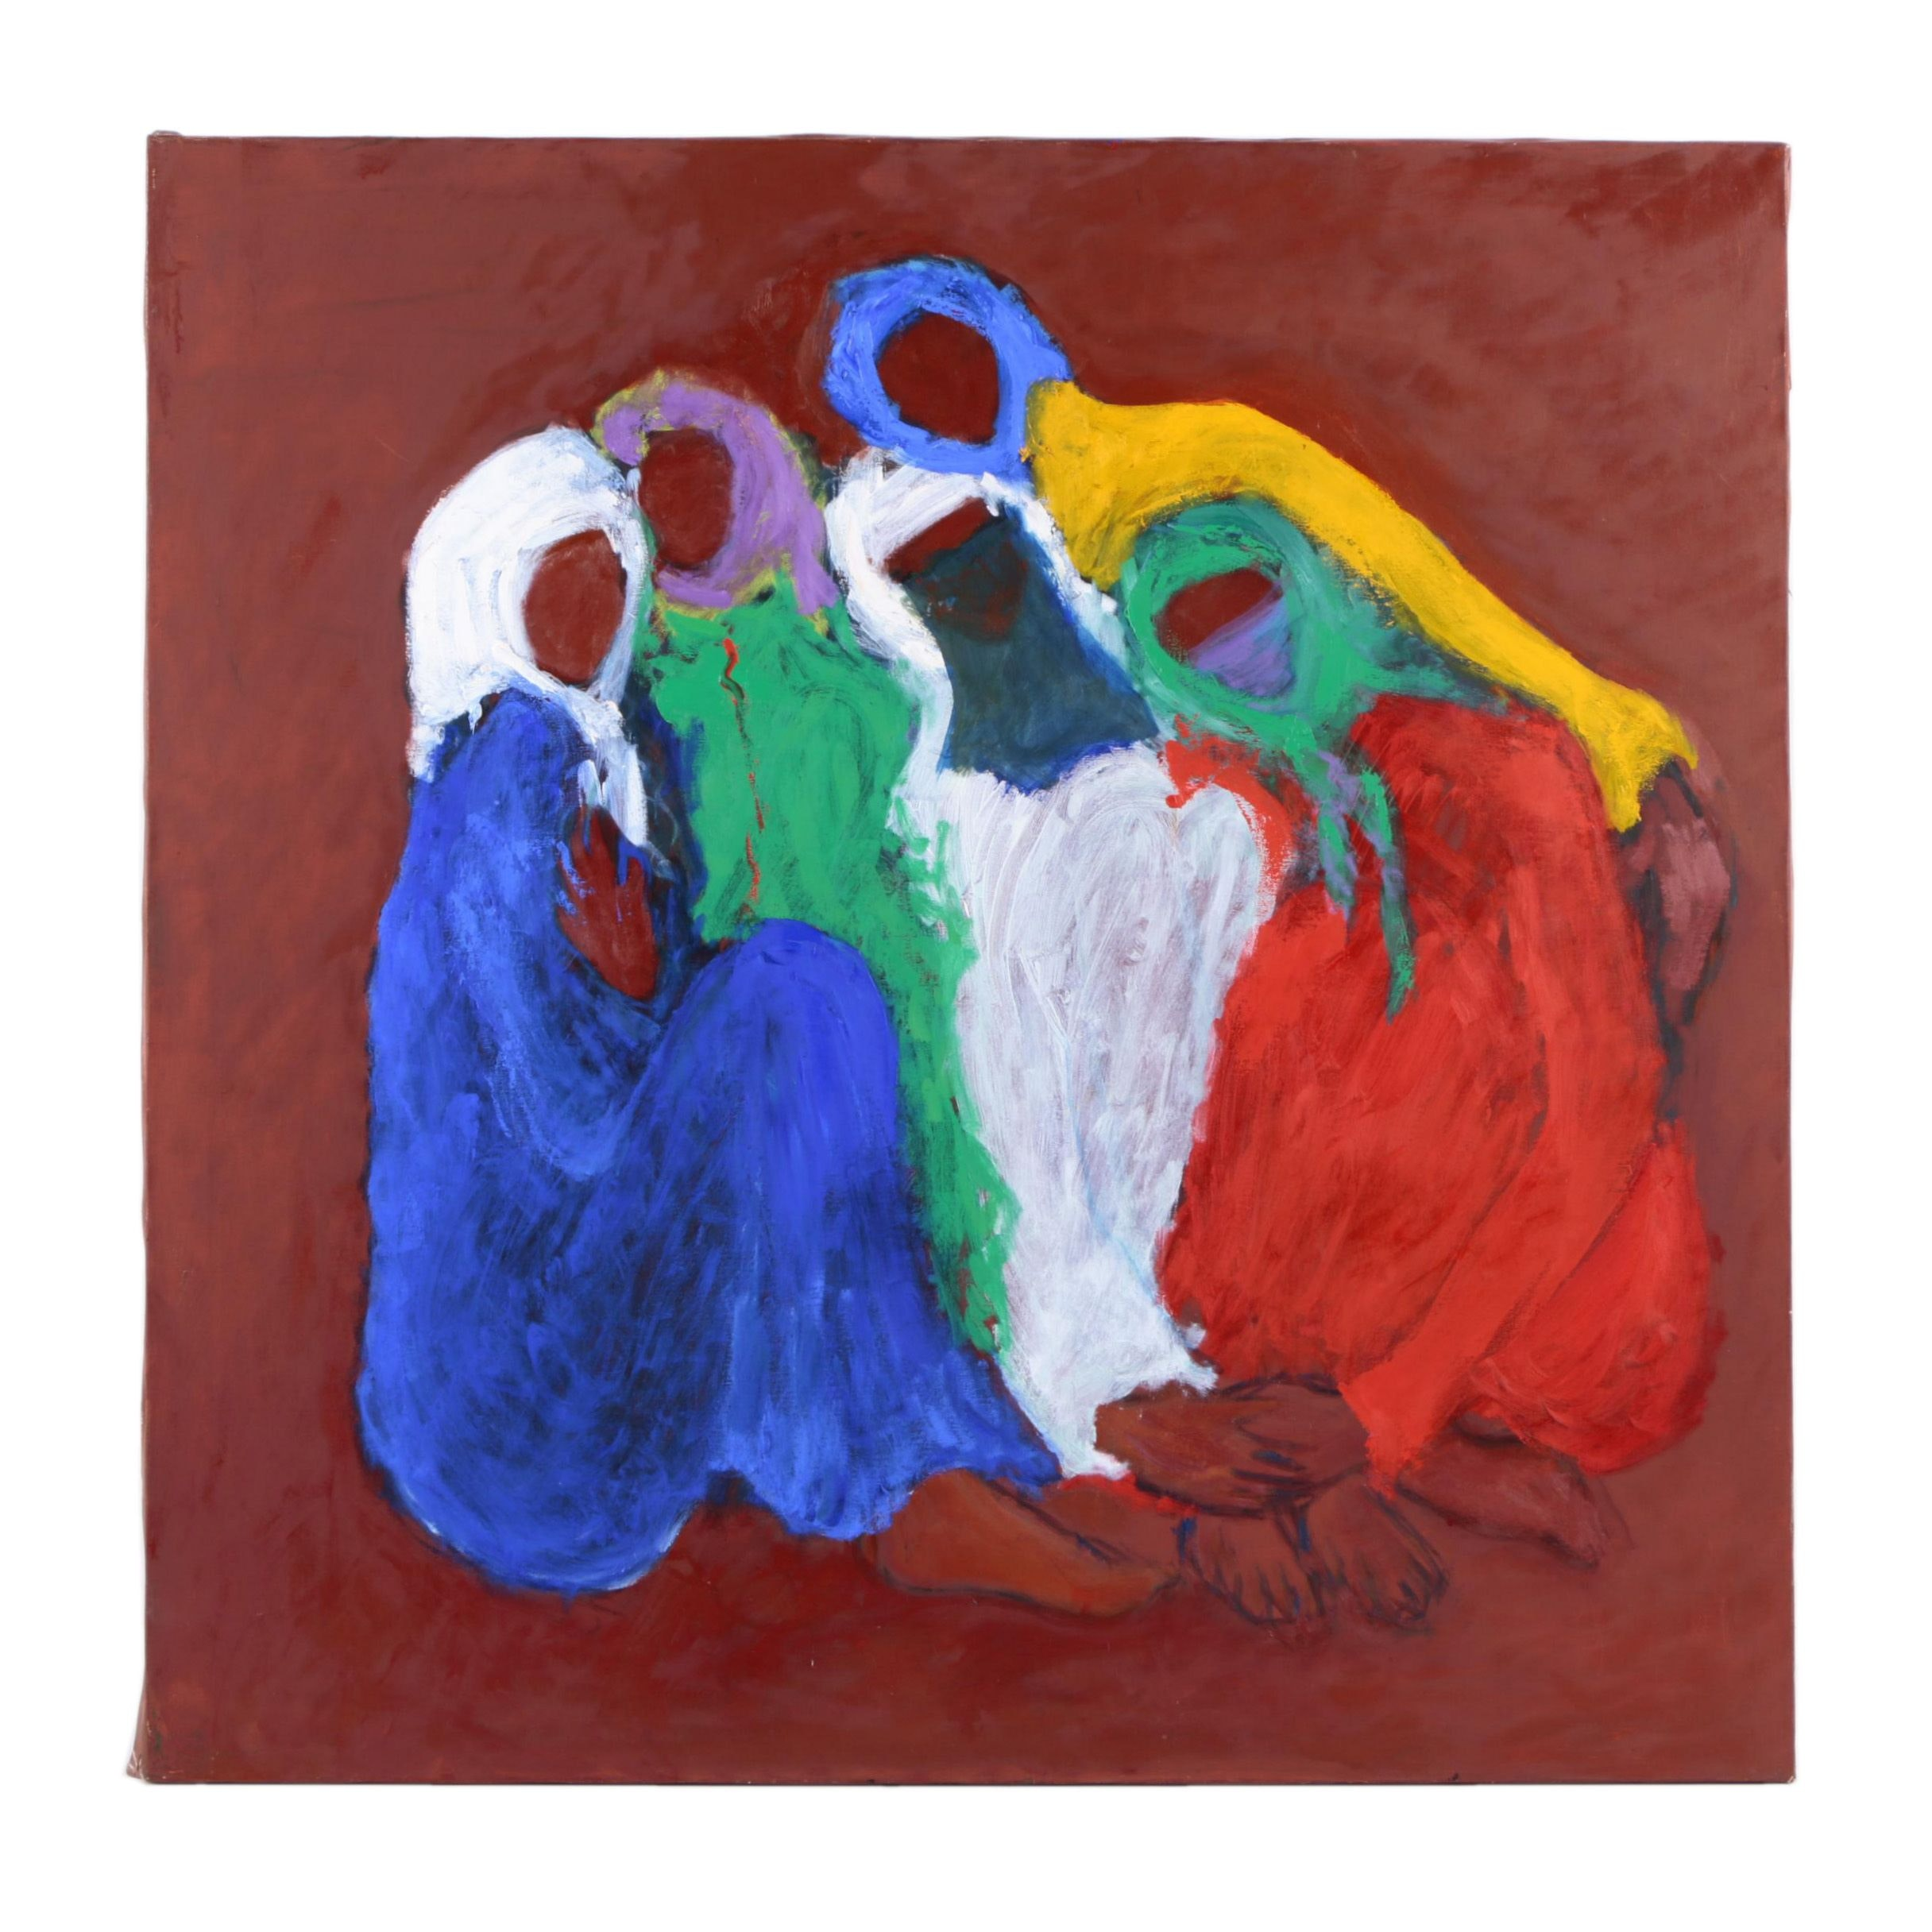 Oil Painting of Women in Headscarves